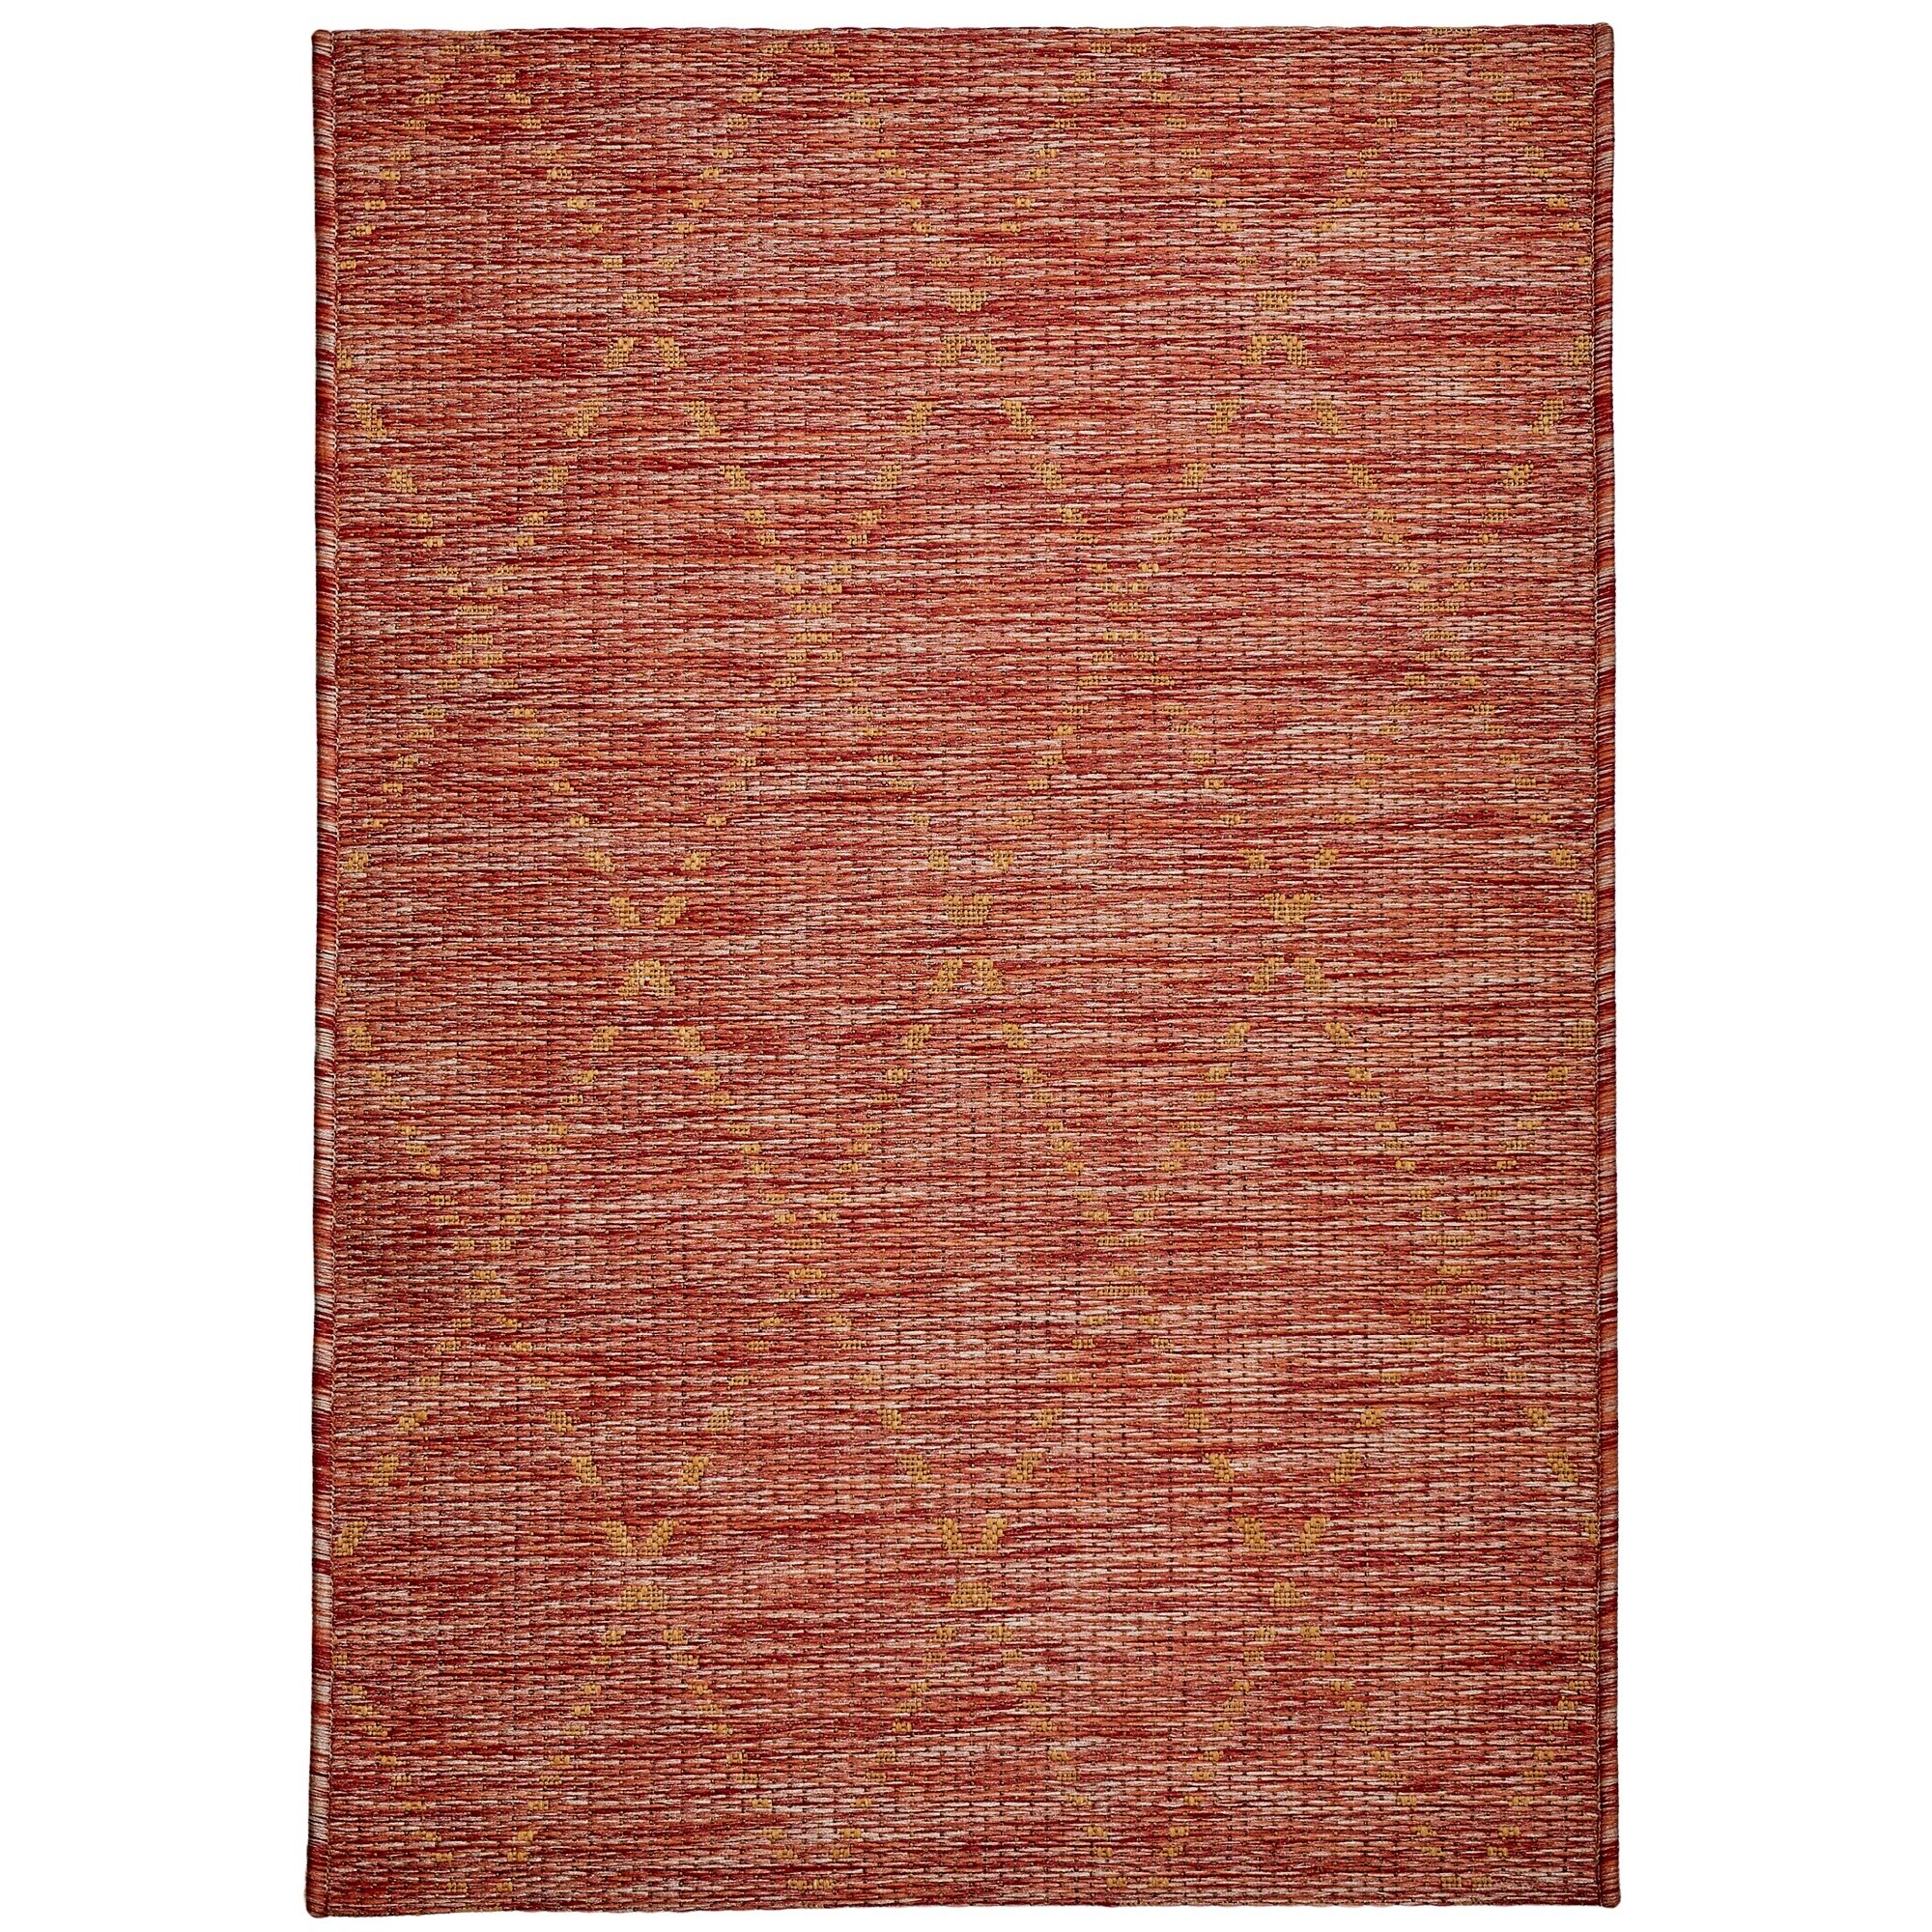 Magic No.301 Modern Tribal Indoor / Outdoor Rug, 290x200cm, Red